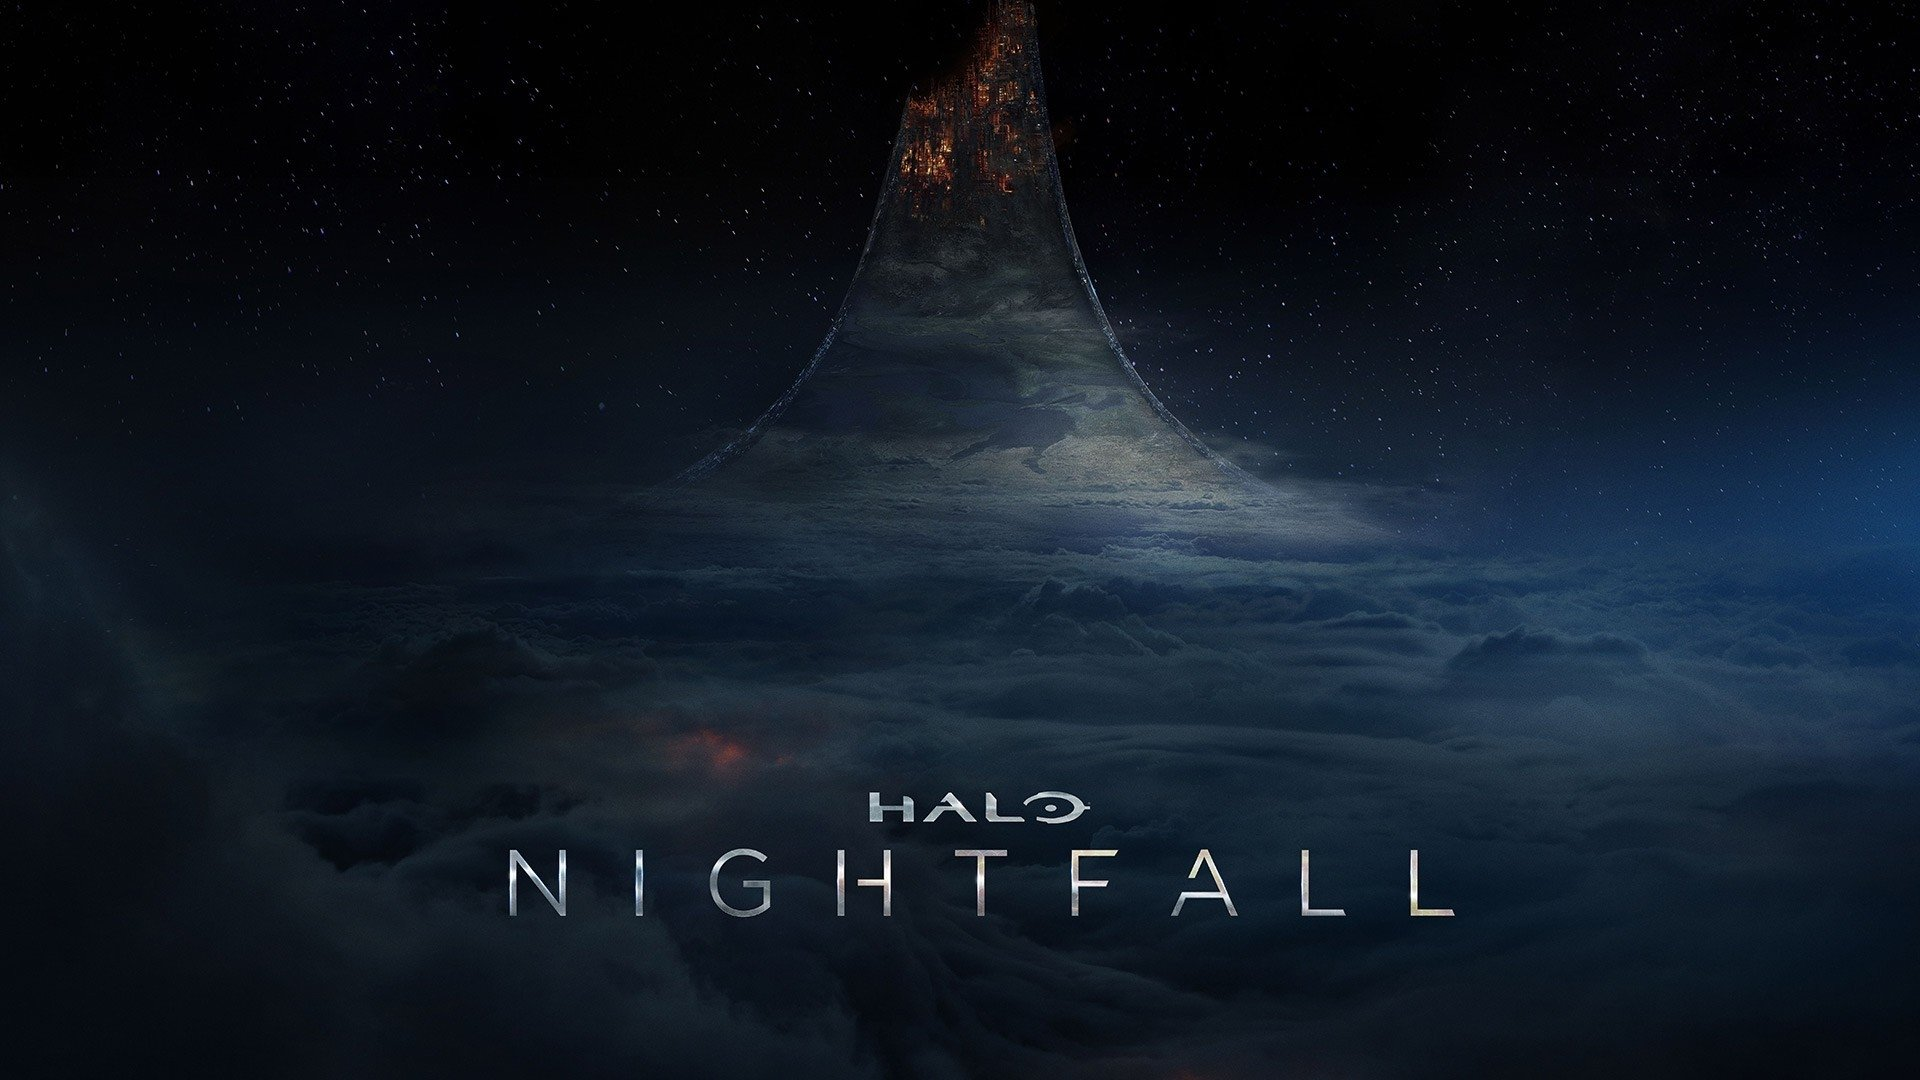 3 Halo Nightfall Hd Wallpapers Background Images